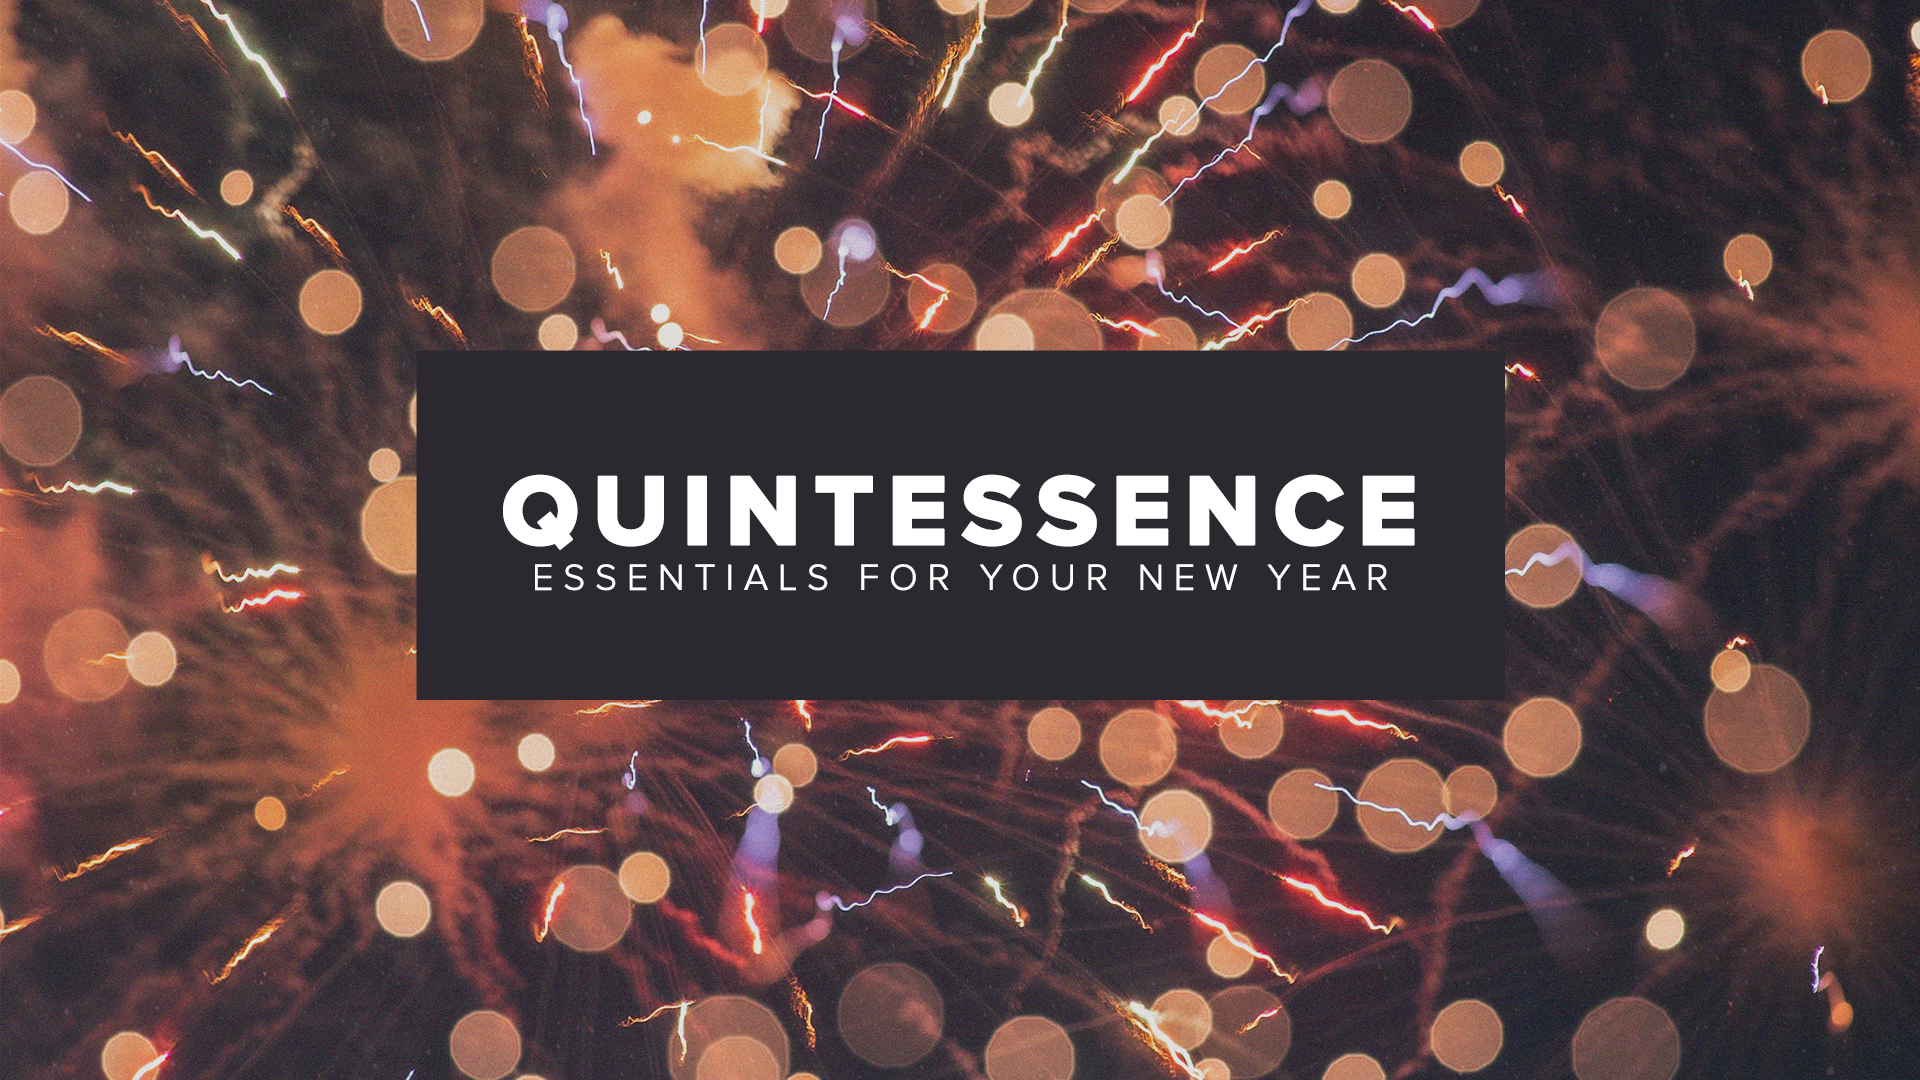 Quintessence - Essentials For Your New Year